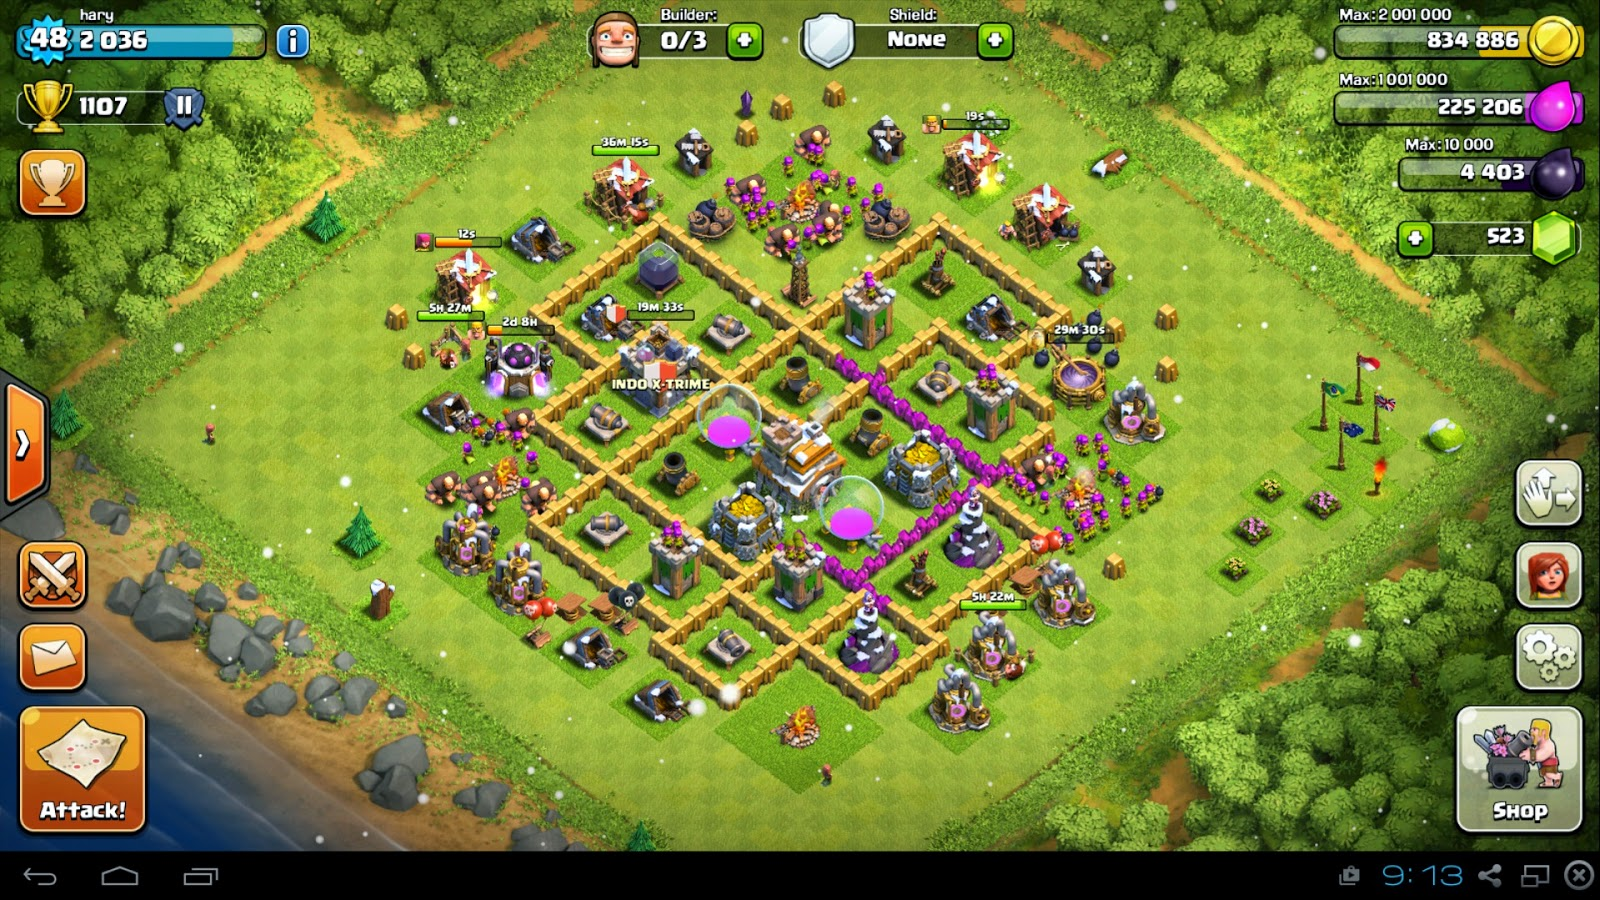 Ultimate town hall 7 design clash of clans